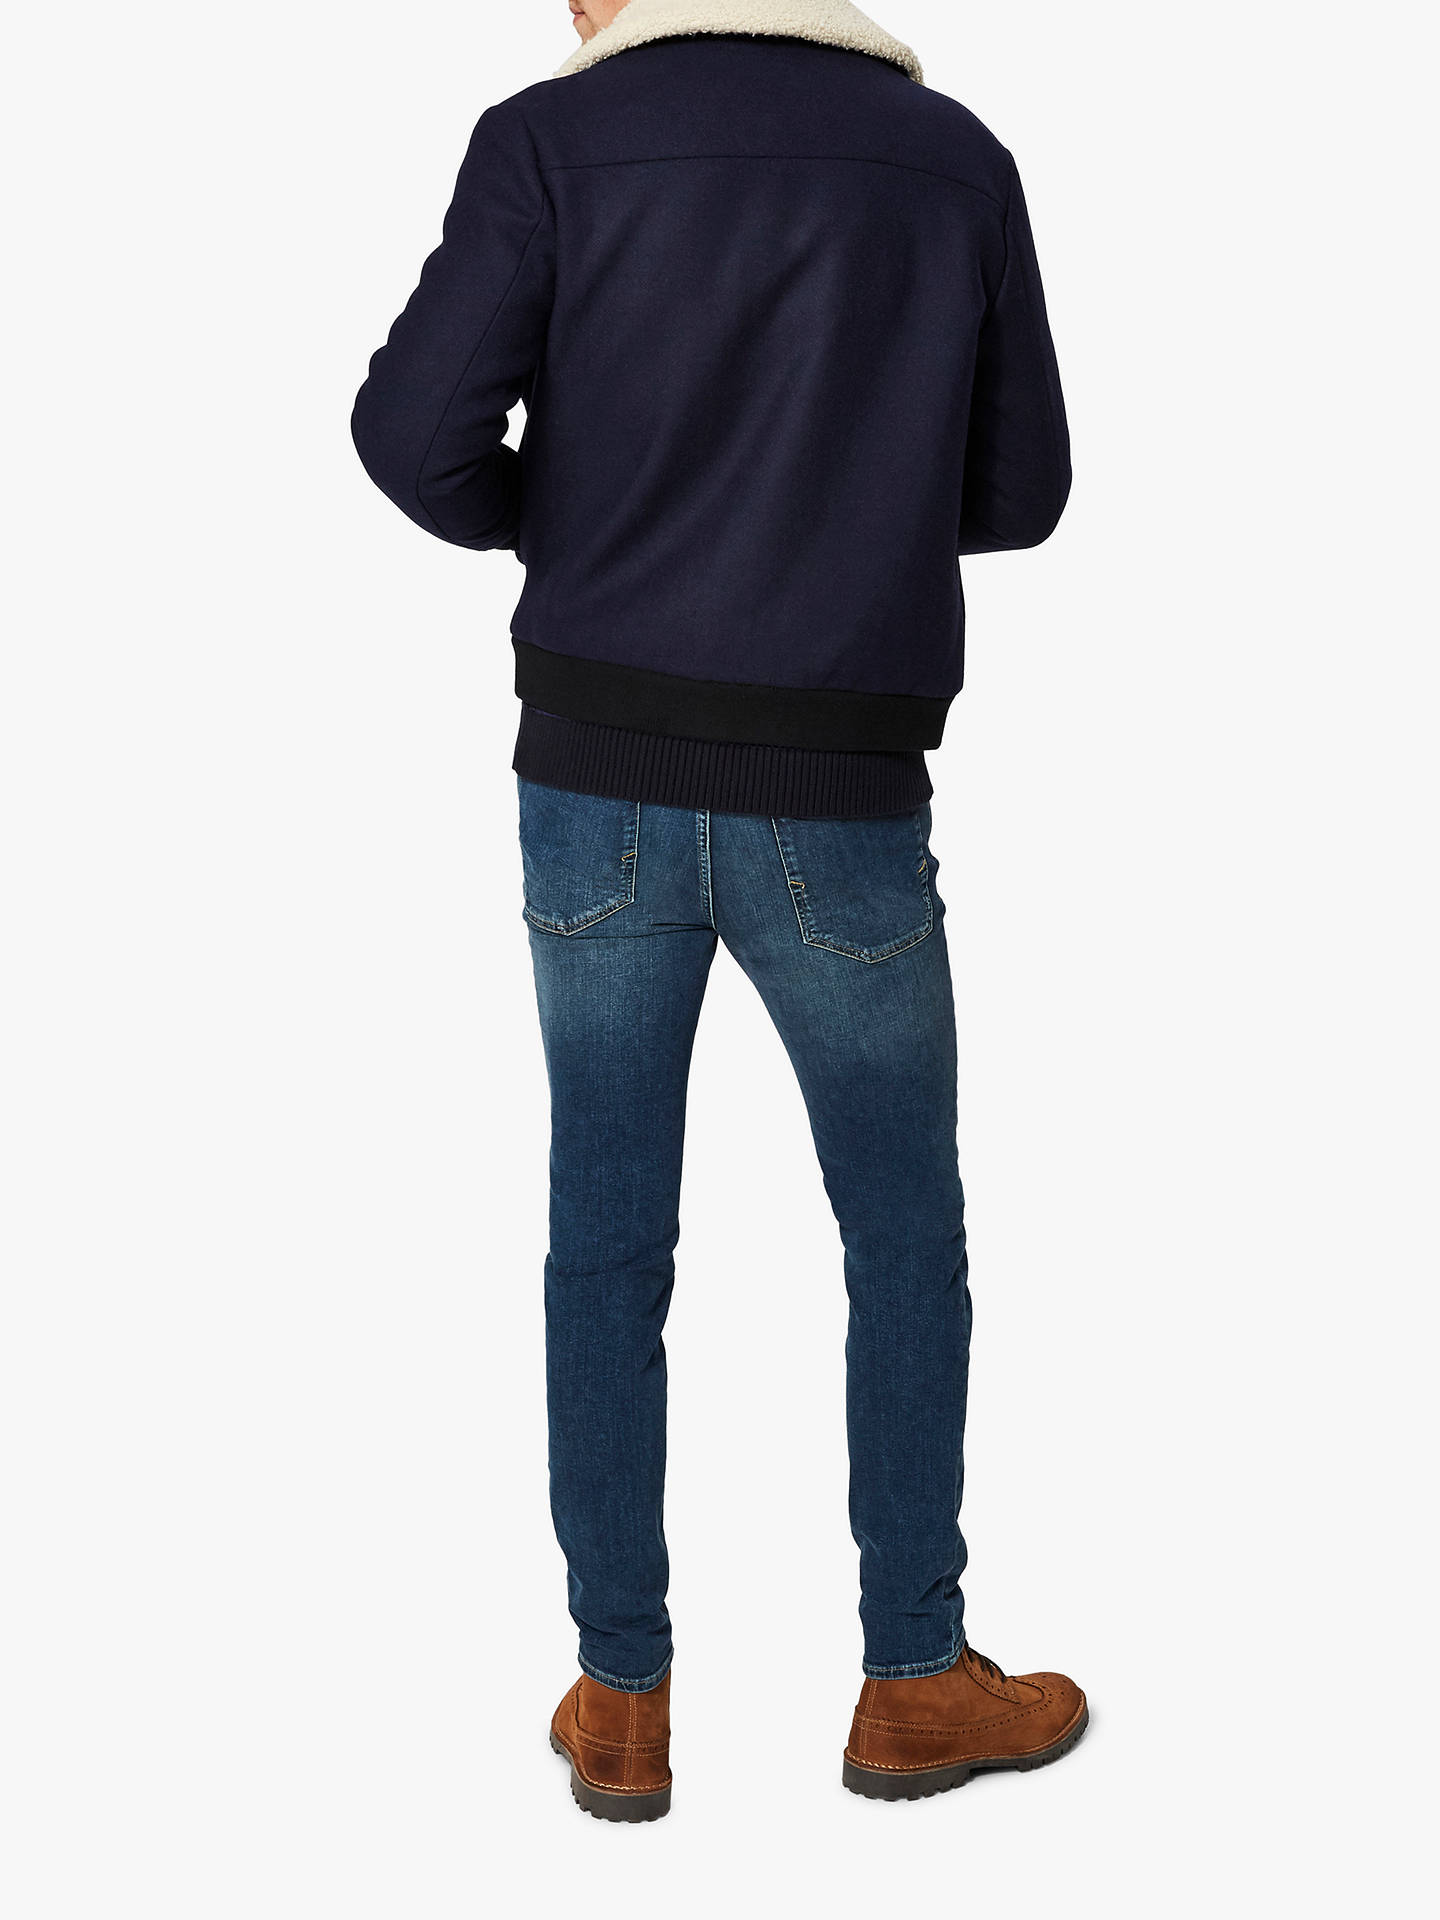 BuySelected Homme Splashproof Wool Jacket, Navy, M Online at johnlewis.com